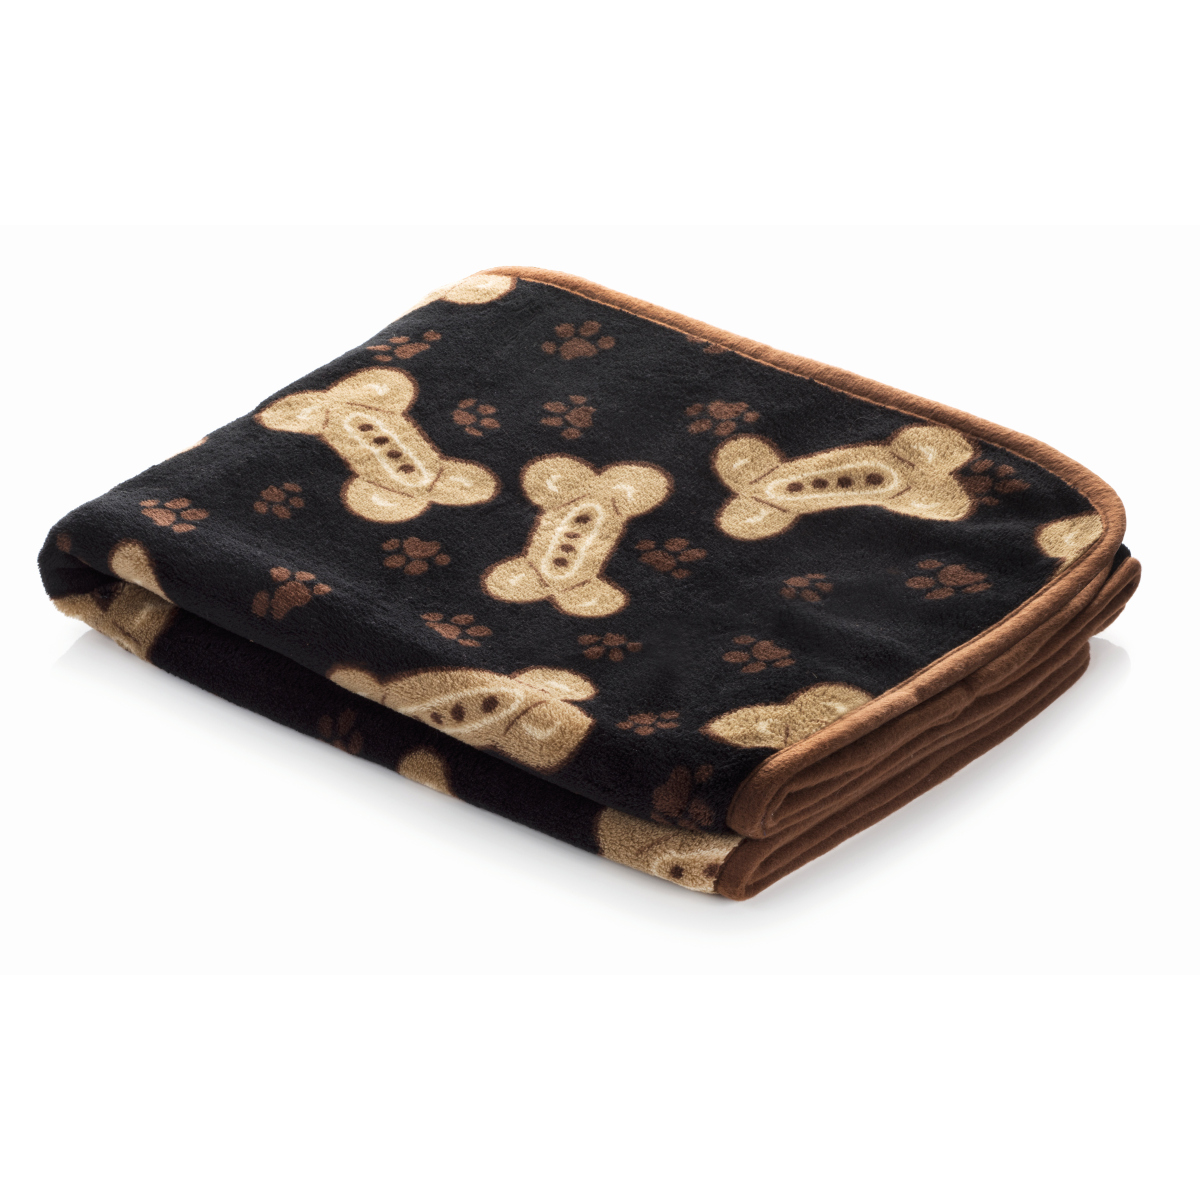 Smart pet love - snuggle blanket zwart met beige botten print